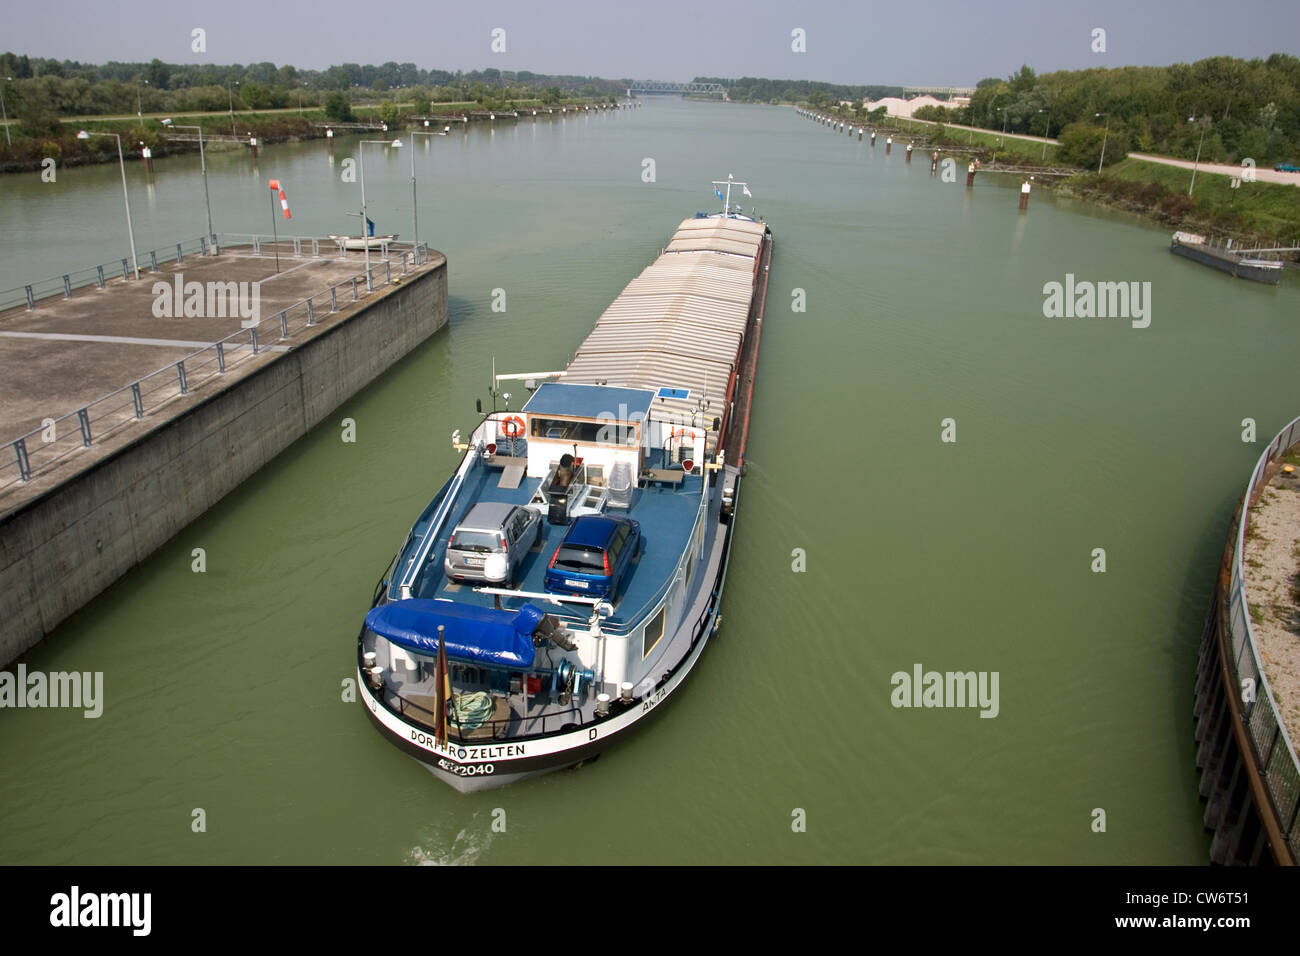 Iffezheim IWT - exit of a barge from the lock - Stock Image